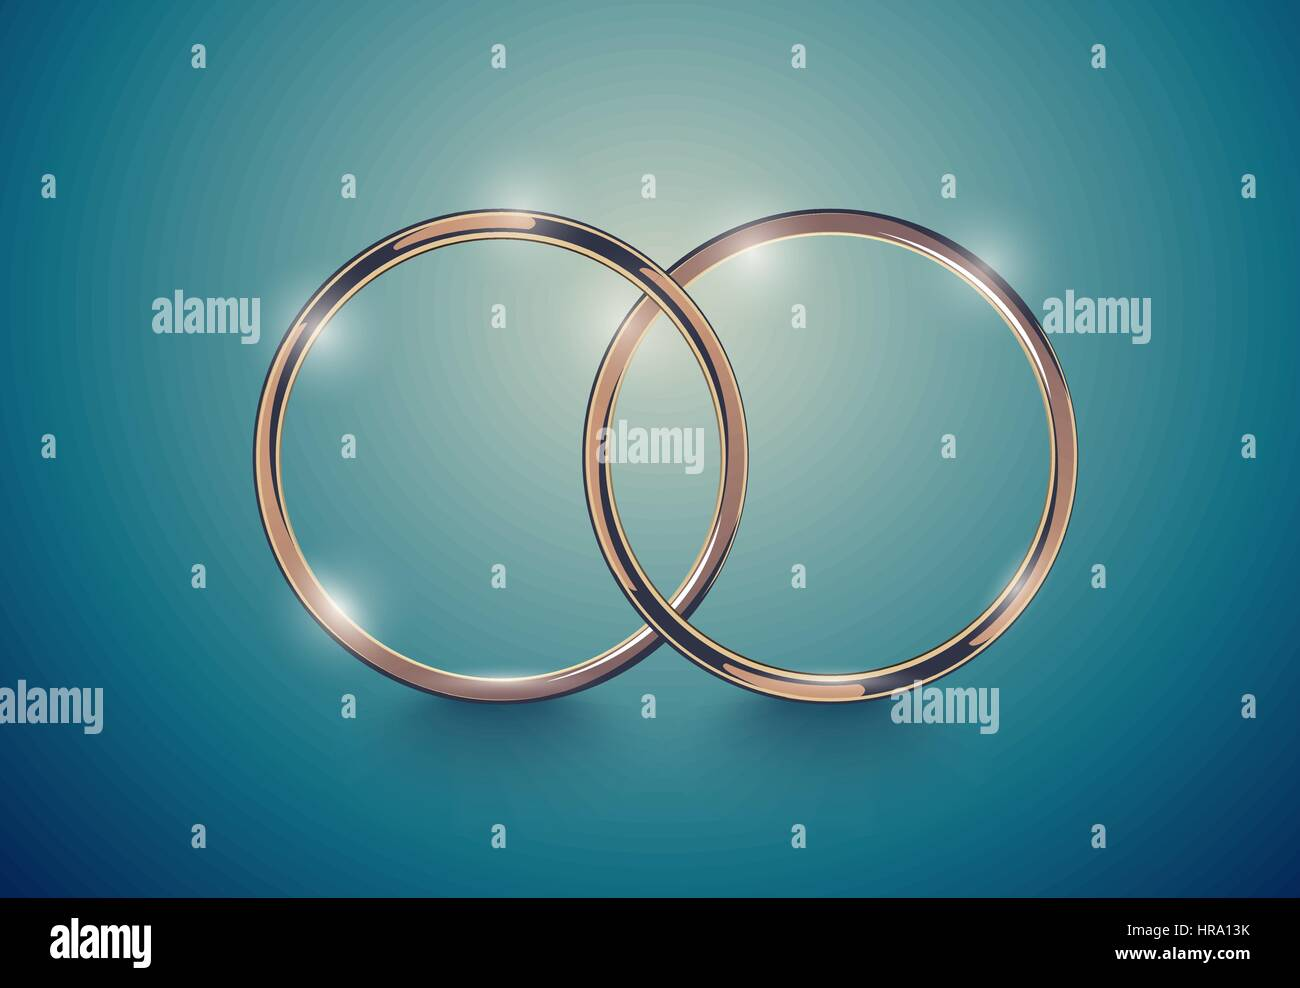 Abstract Luxury Golden Ring Vector Light Vintage Effect